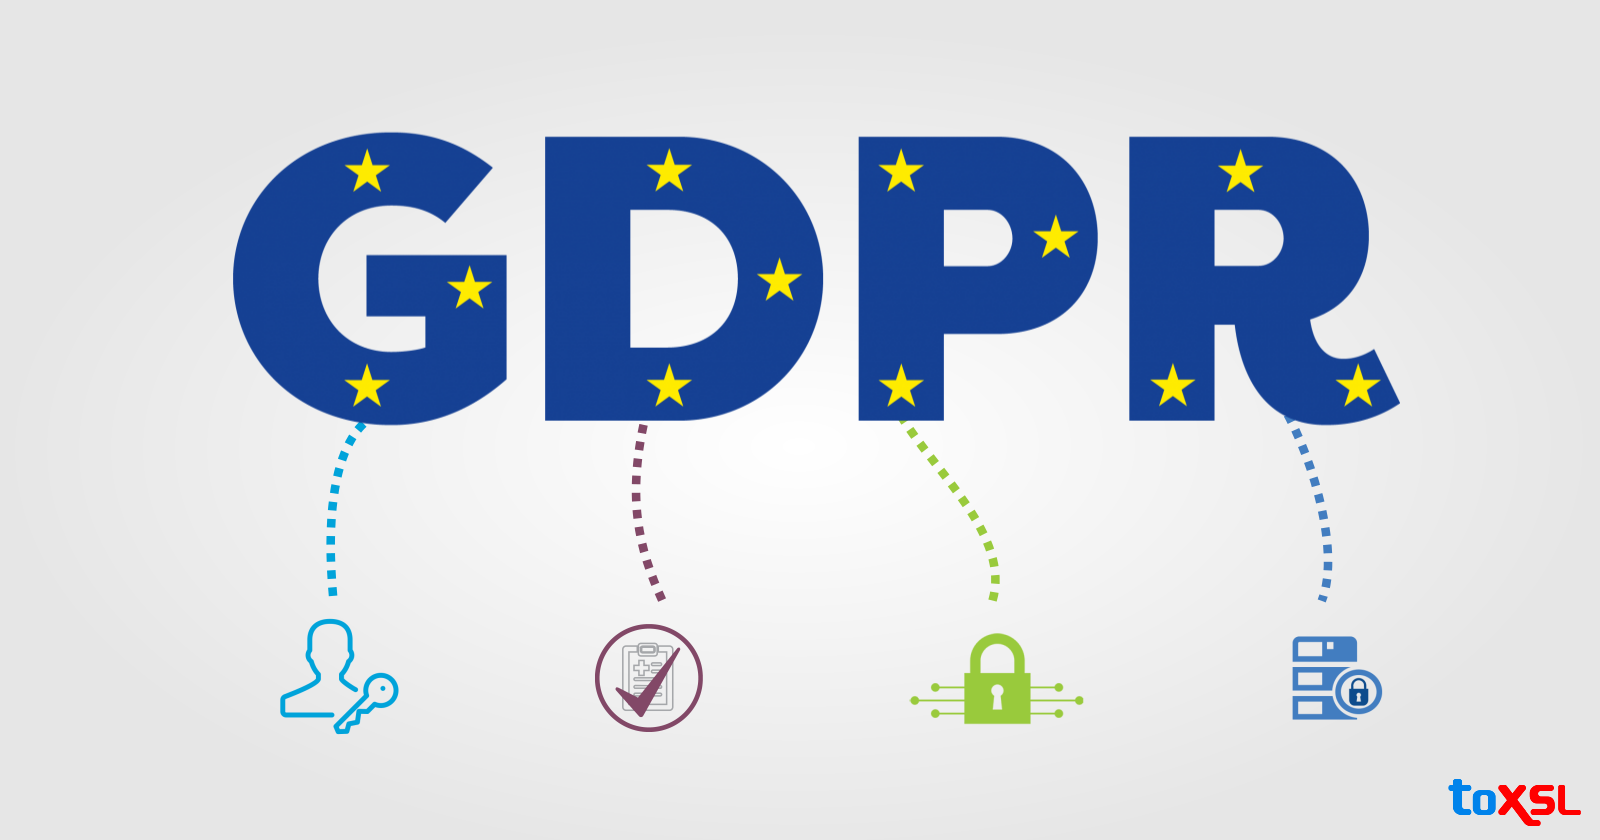 Immediate Modifications to Make Your Website GDPR compliant